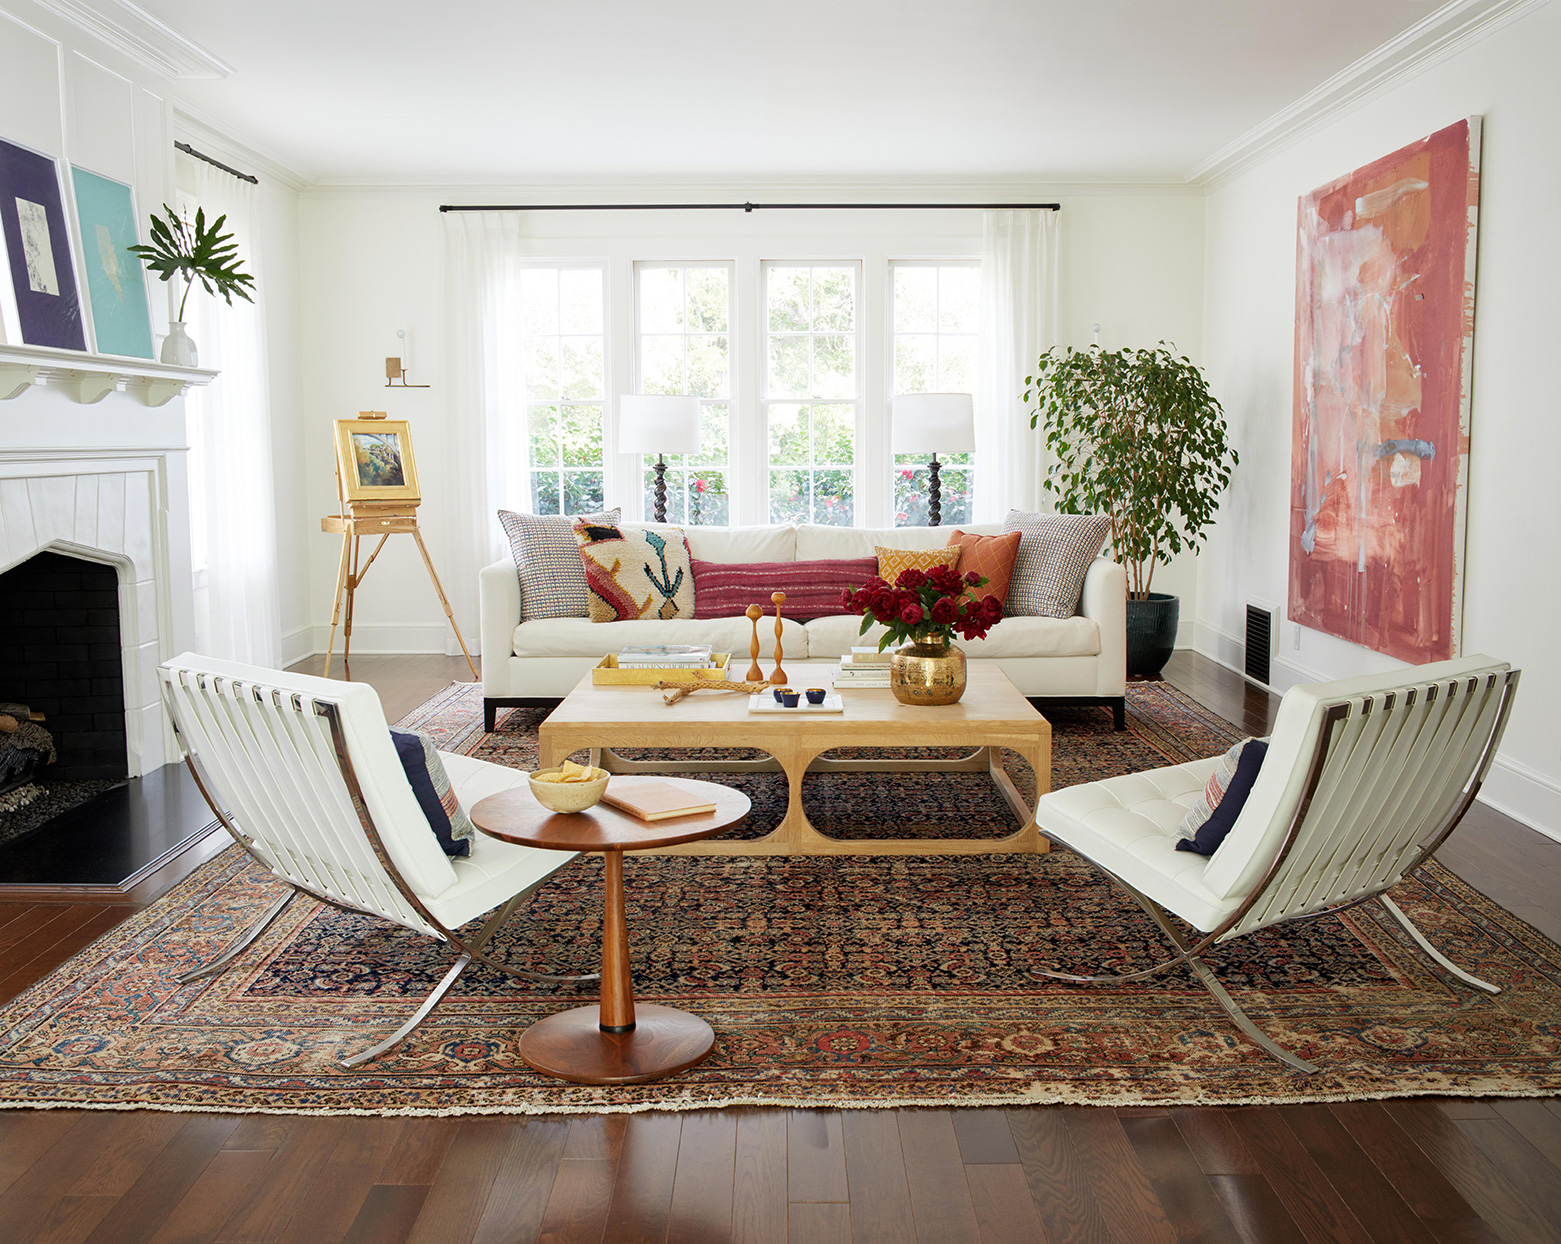 Living room with large area rug